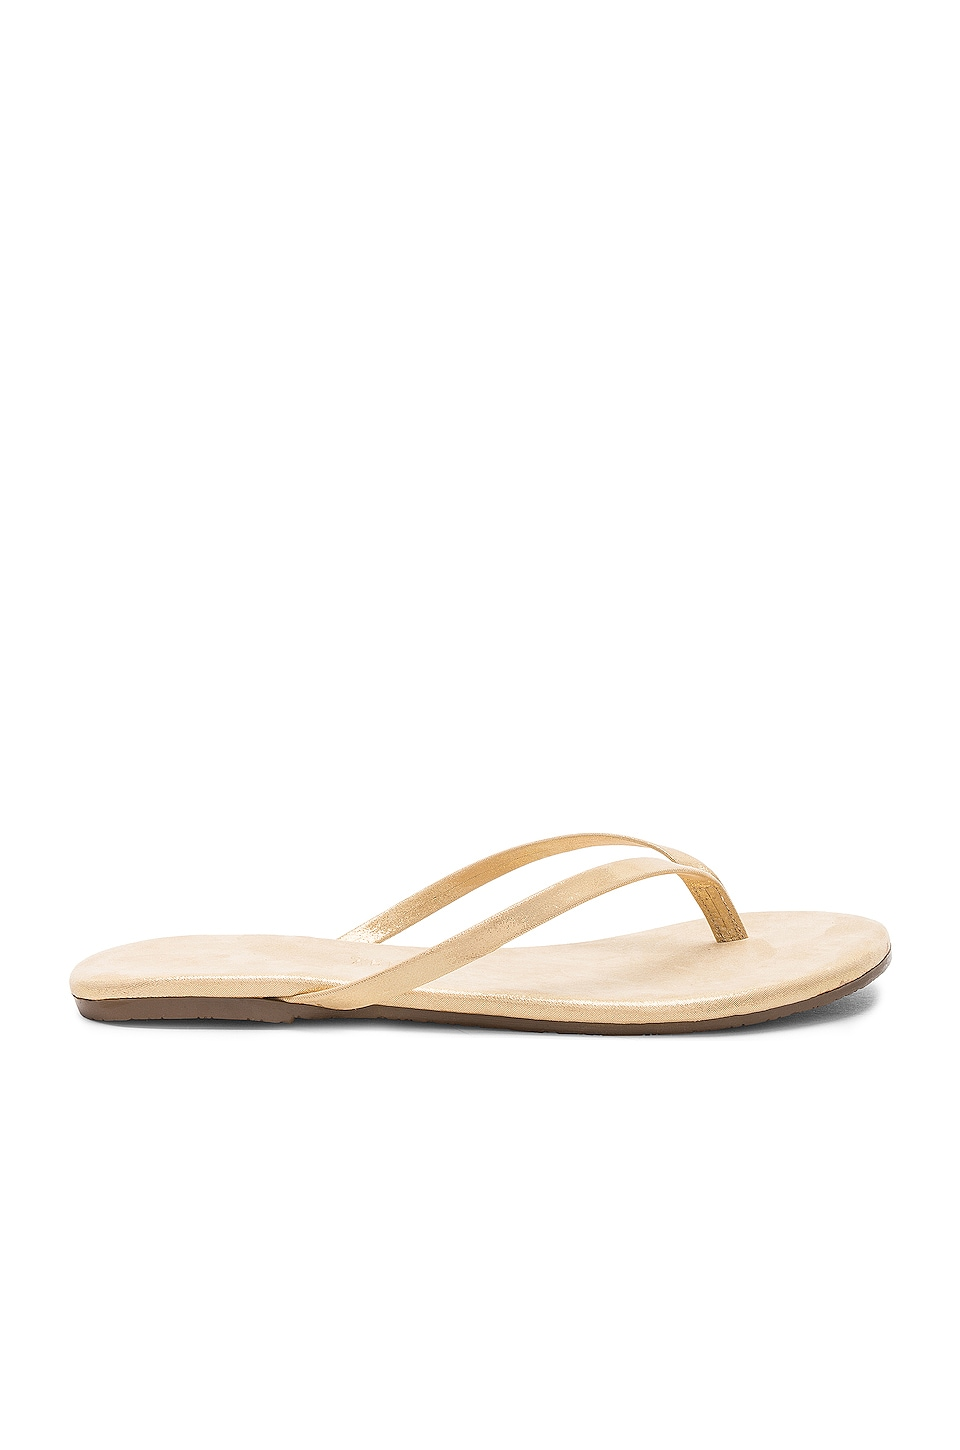 TKEES Sandal in Sandbeam